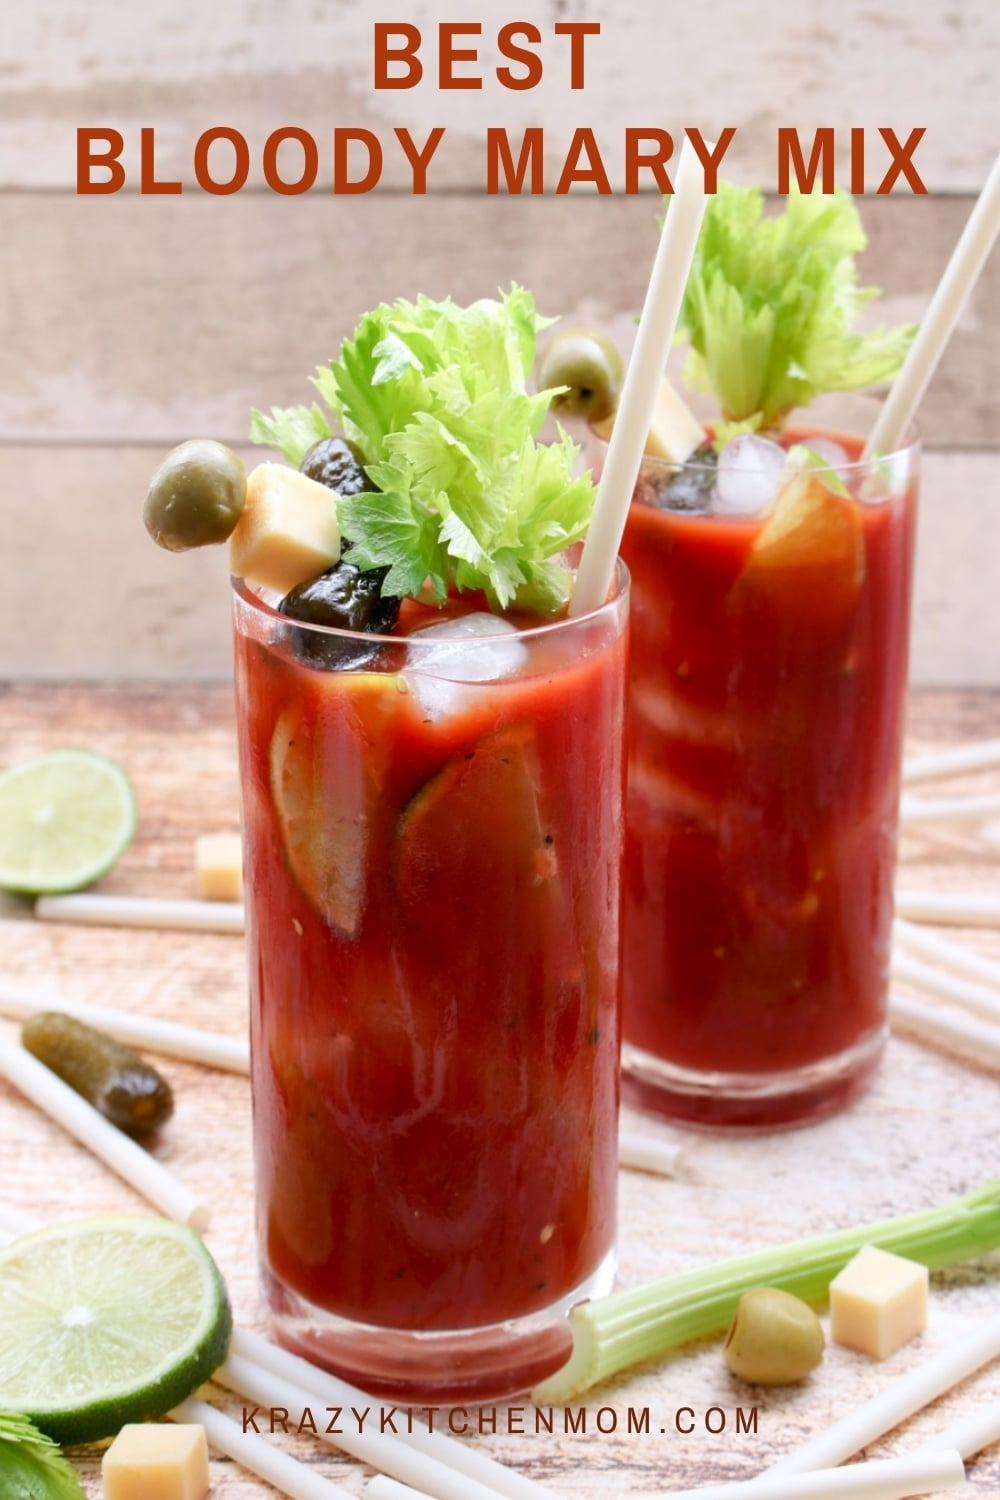 Bloody Mary mixes are very competitive but I've got the best mix you'll ever taste. You are definitely going to want to learn my secret ingredient that makes it extra zingy. via @krazykitchenmom